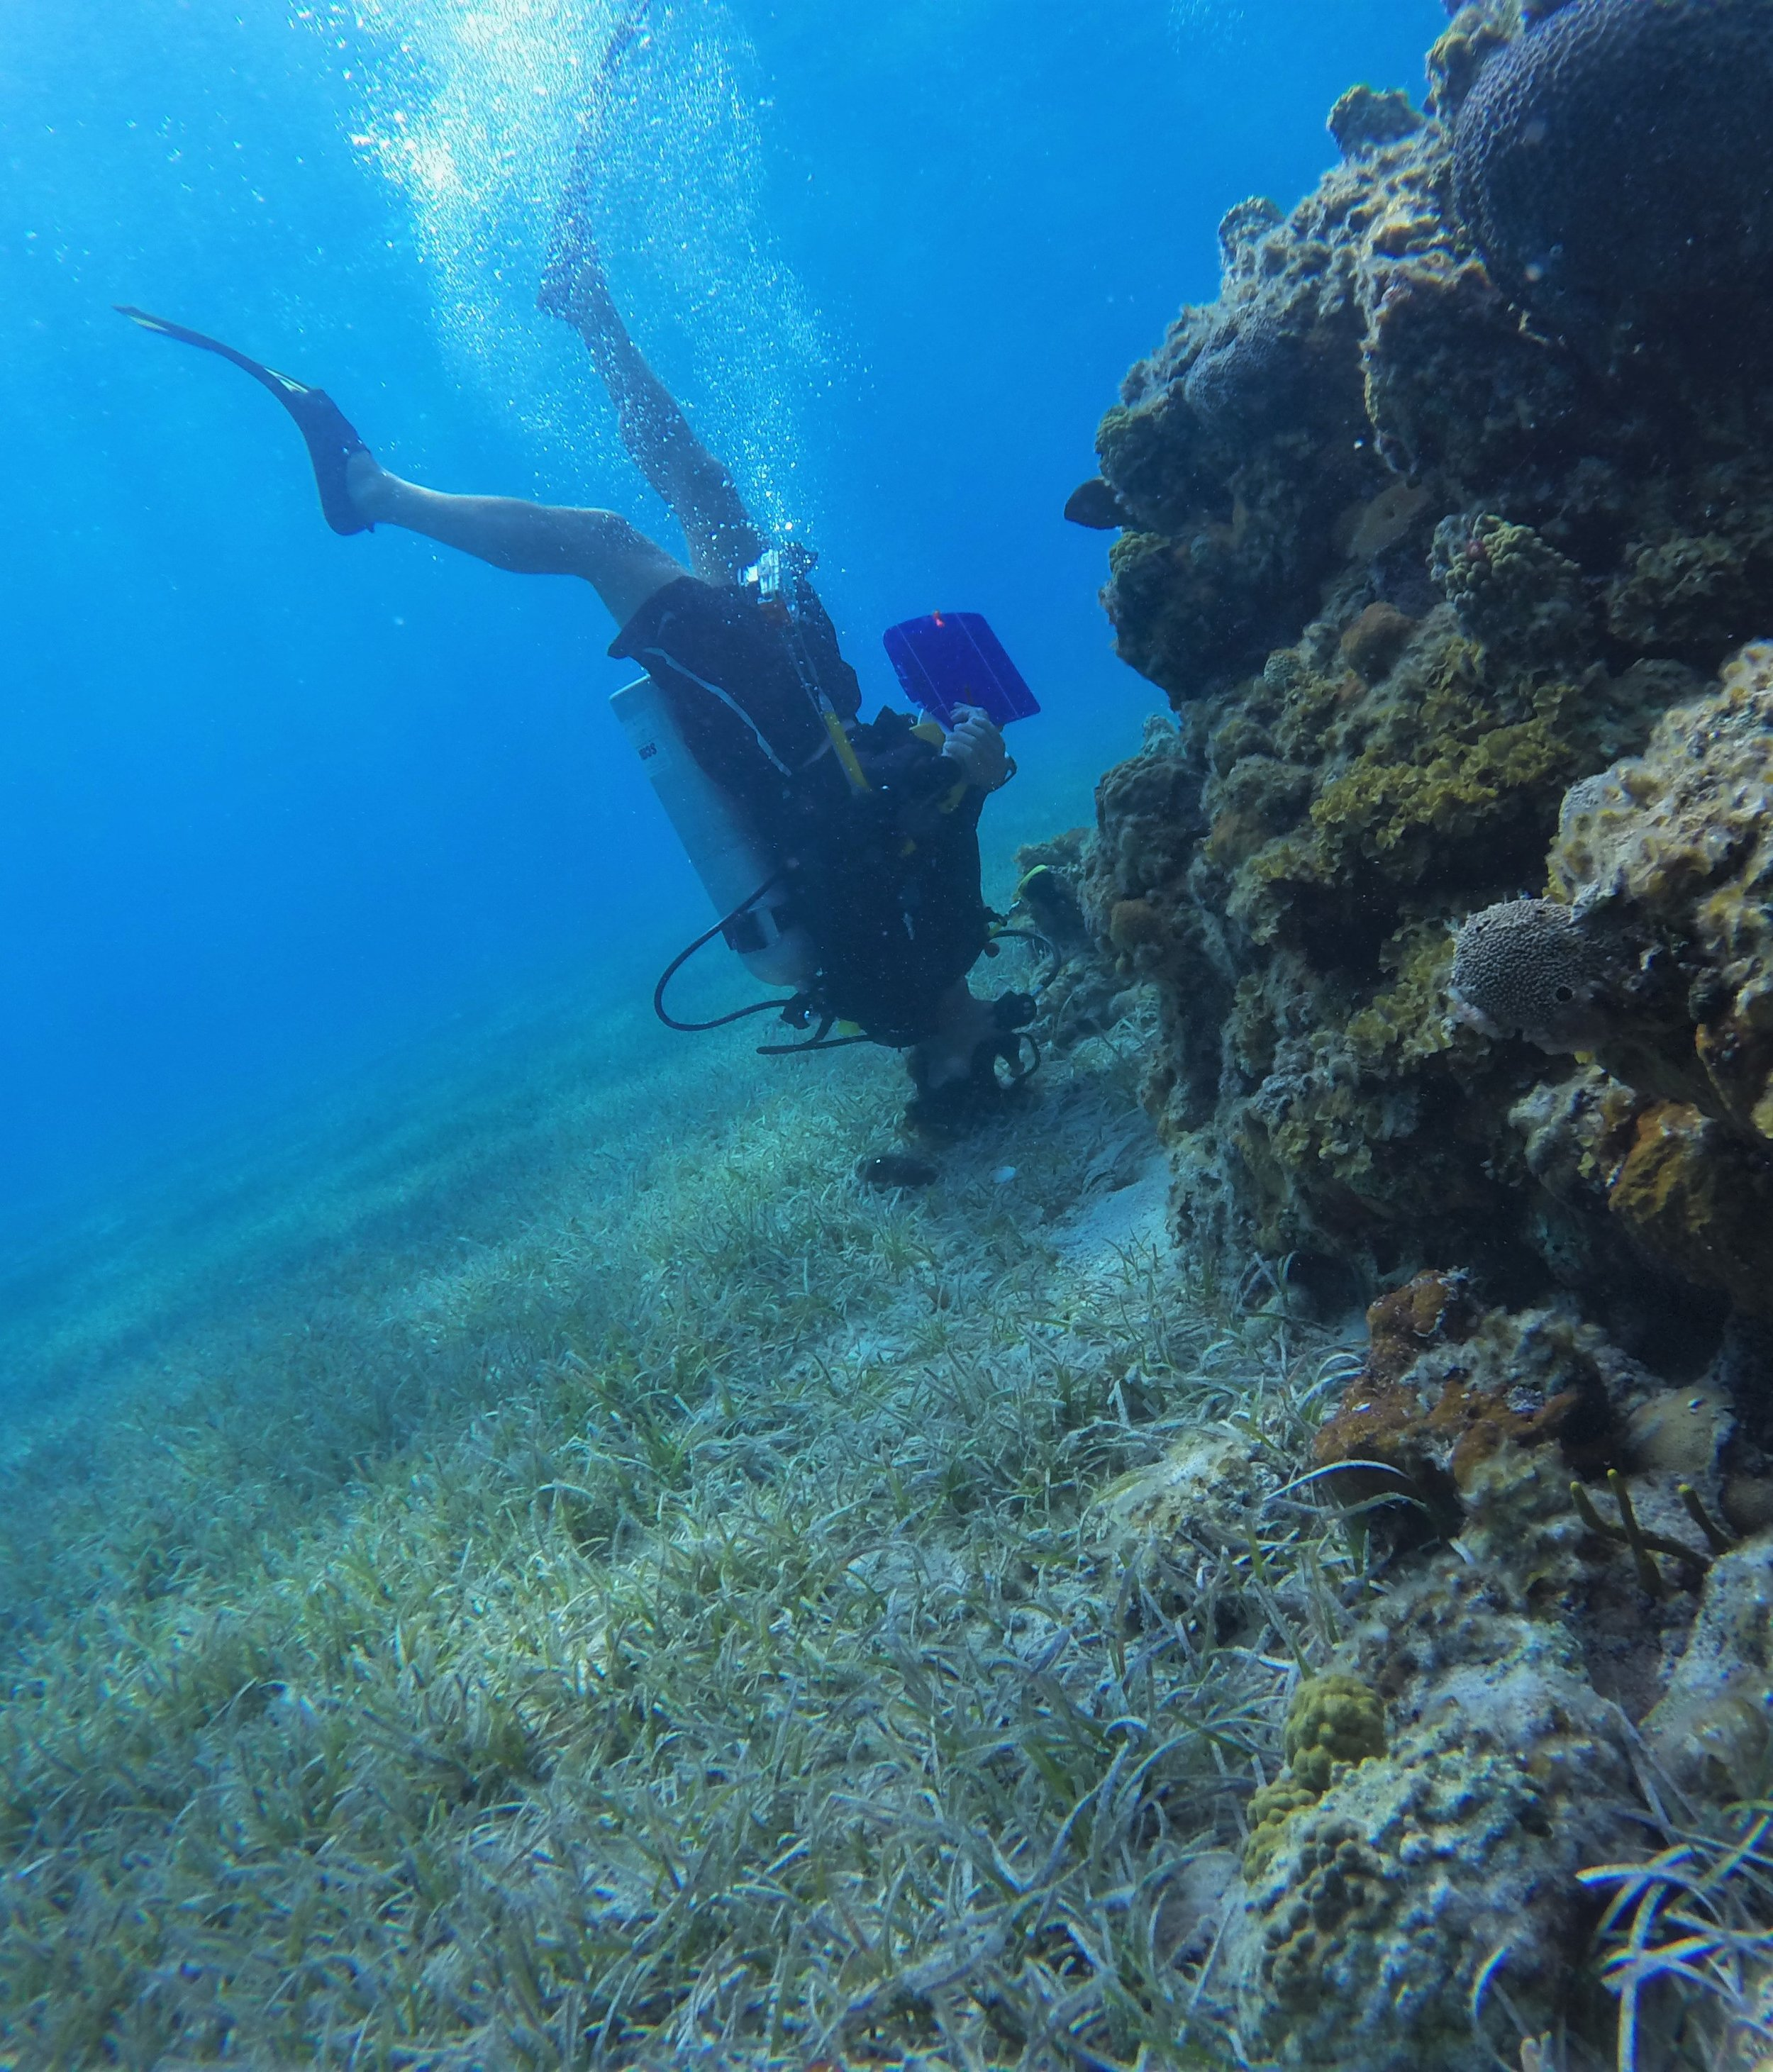 Every part of the reef is searched for lionfish